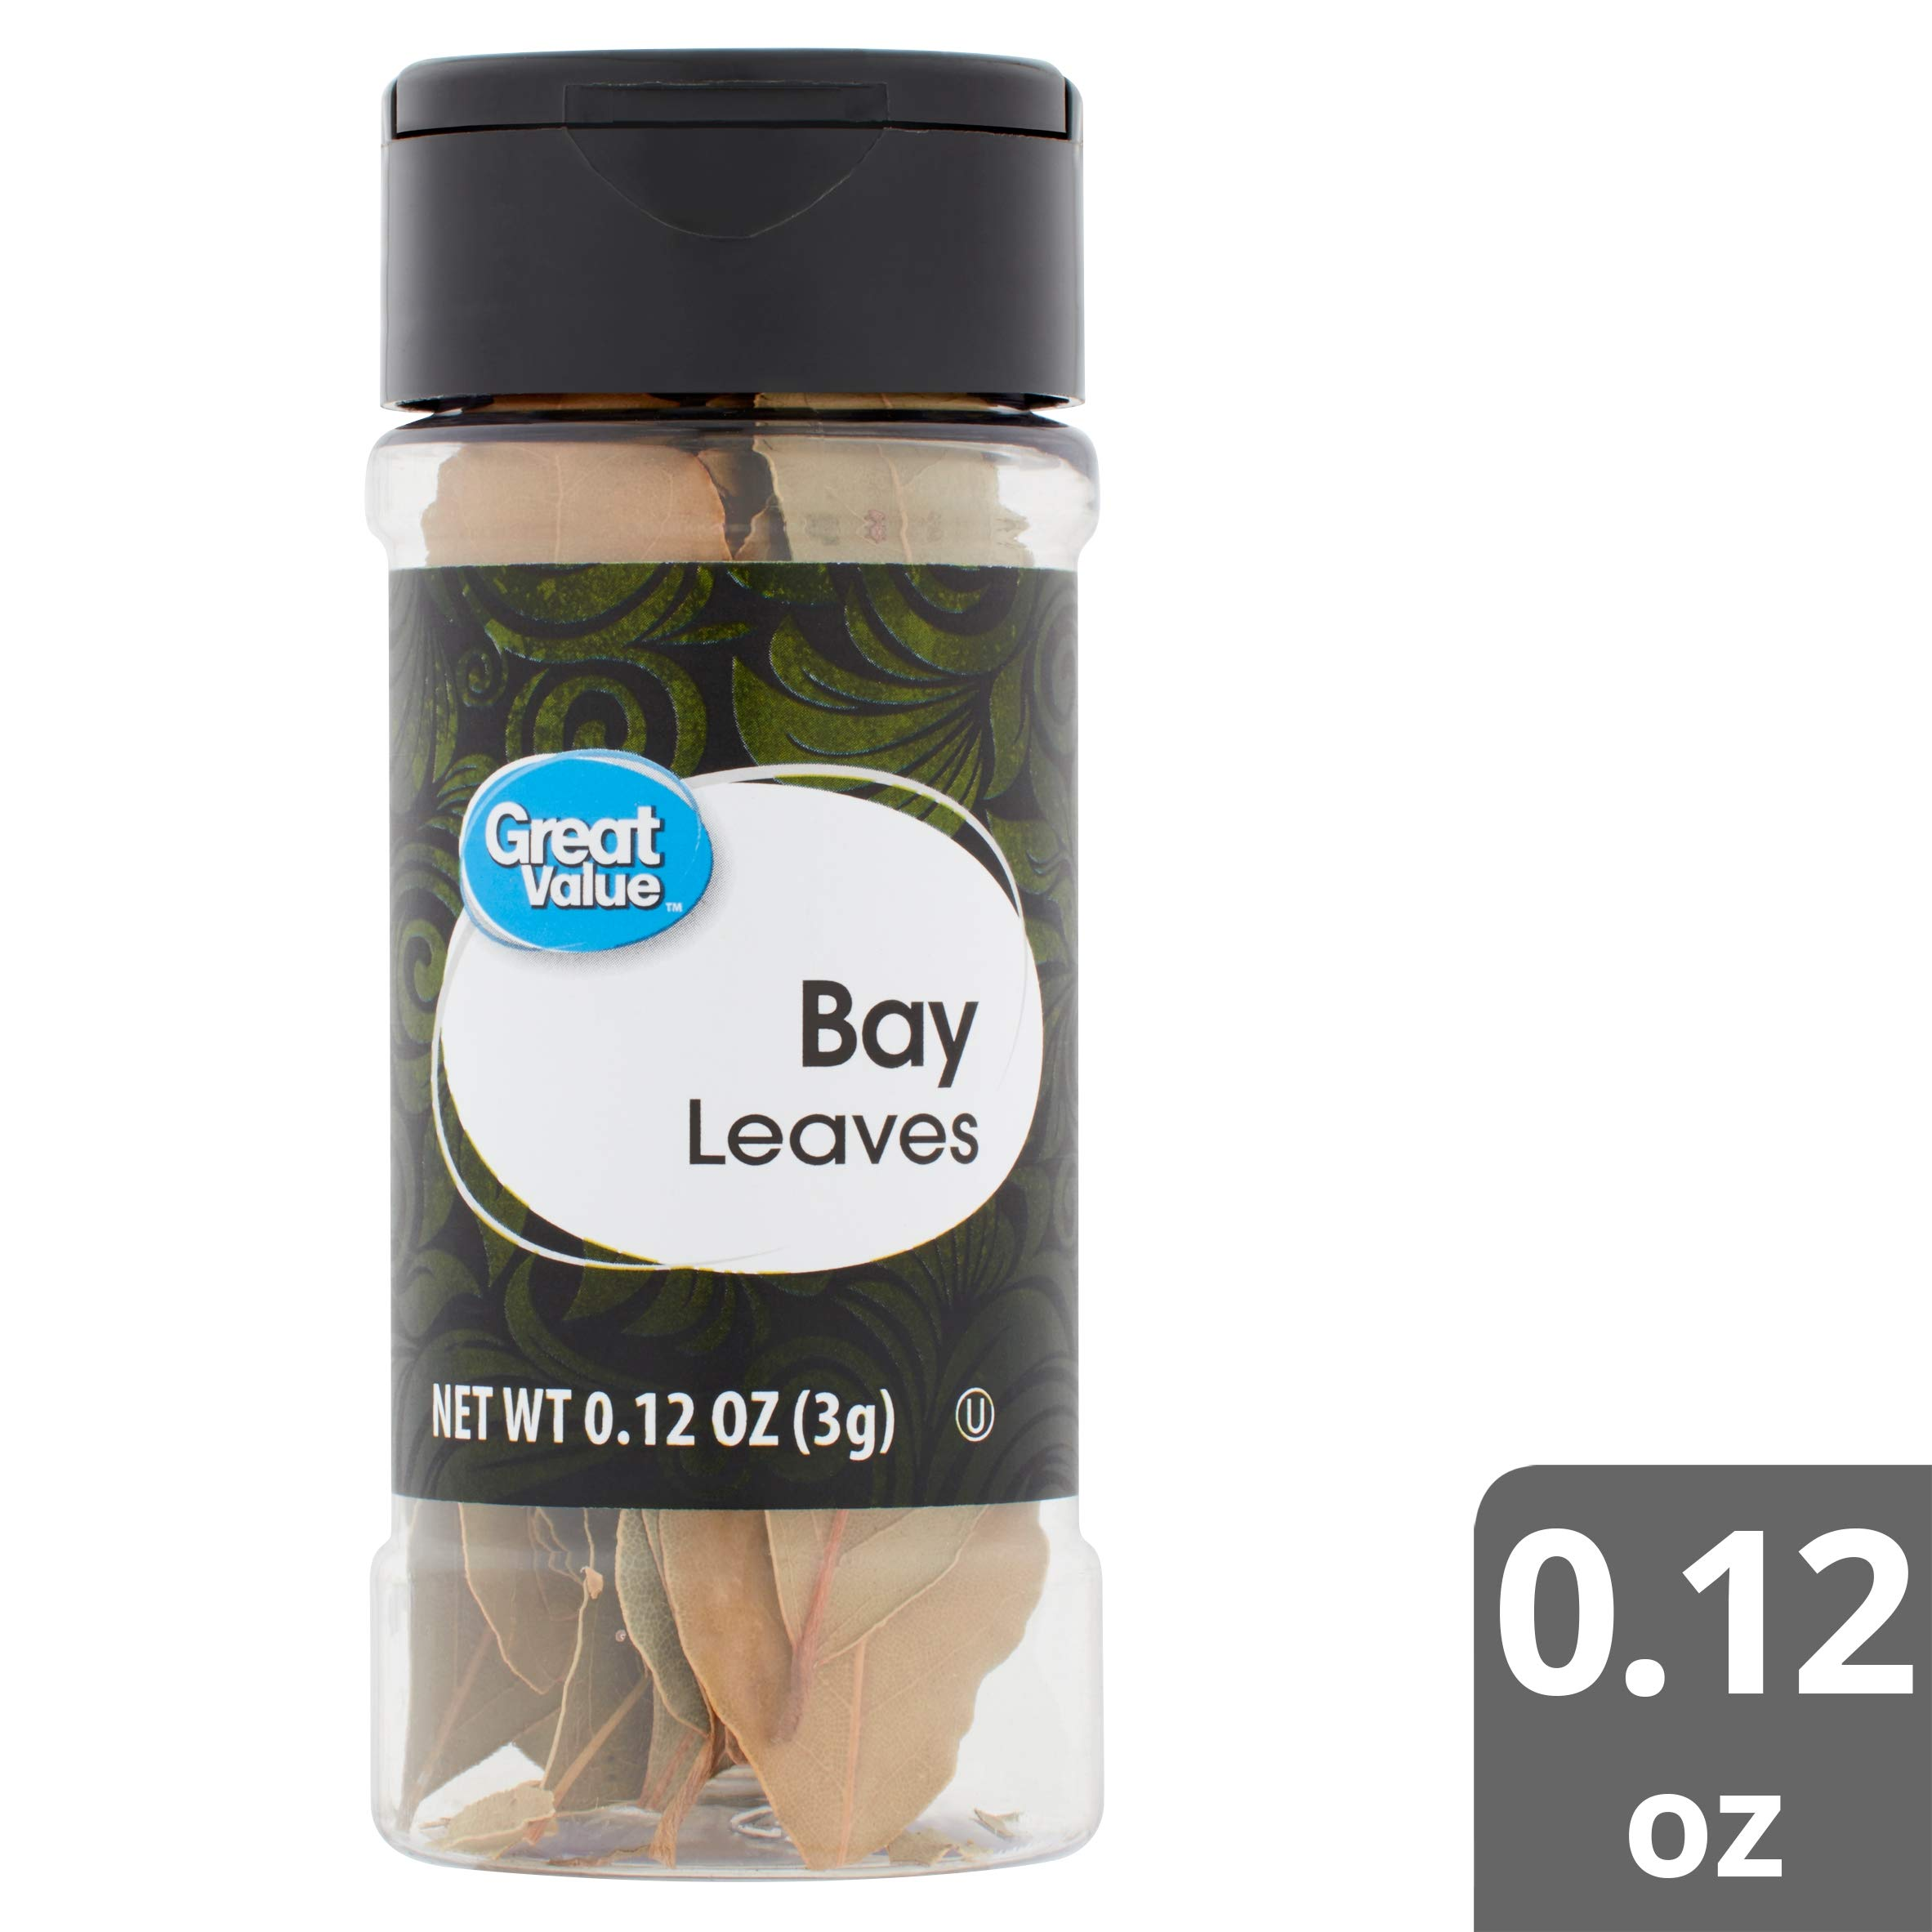 Great Value Bay Leaves, 0.12 oz (2 count) (Pack of 2)